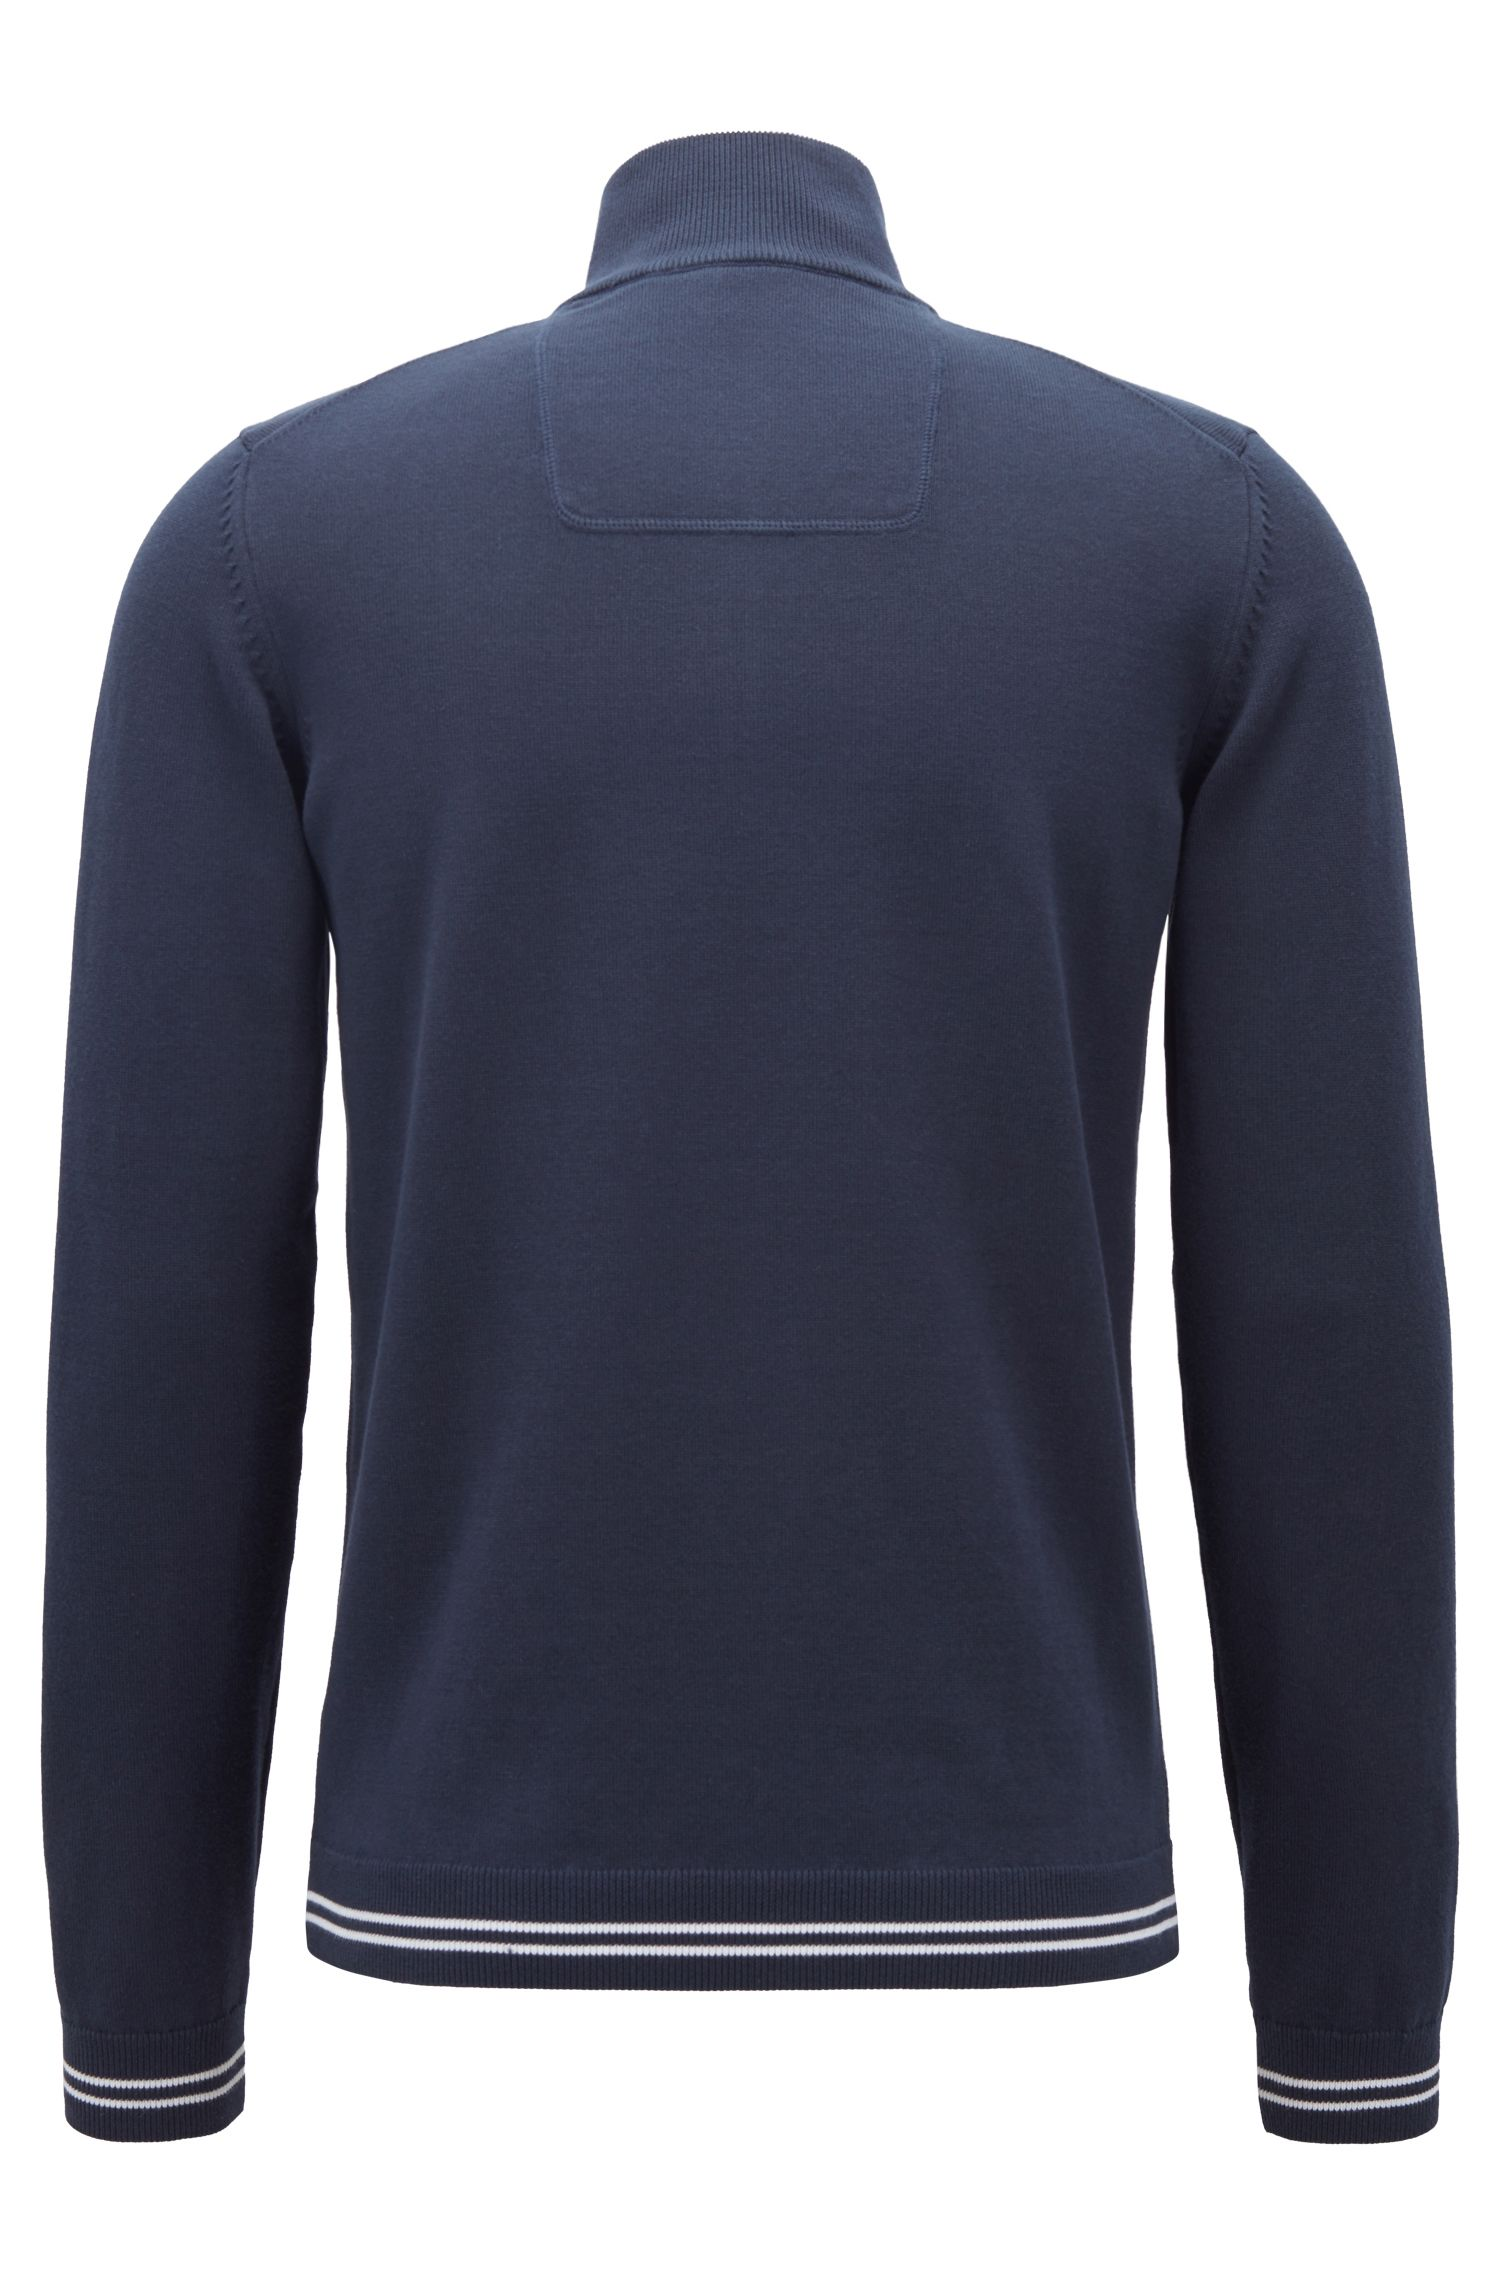 Zip-neck sweater in a knitted cotton blend, Dark Blue